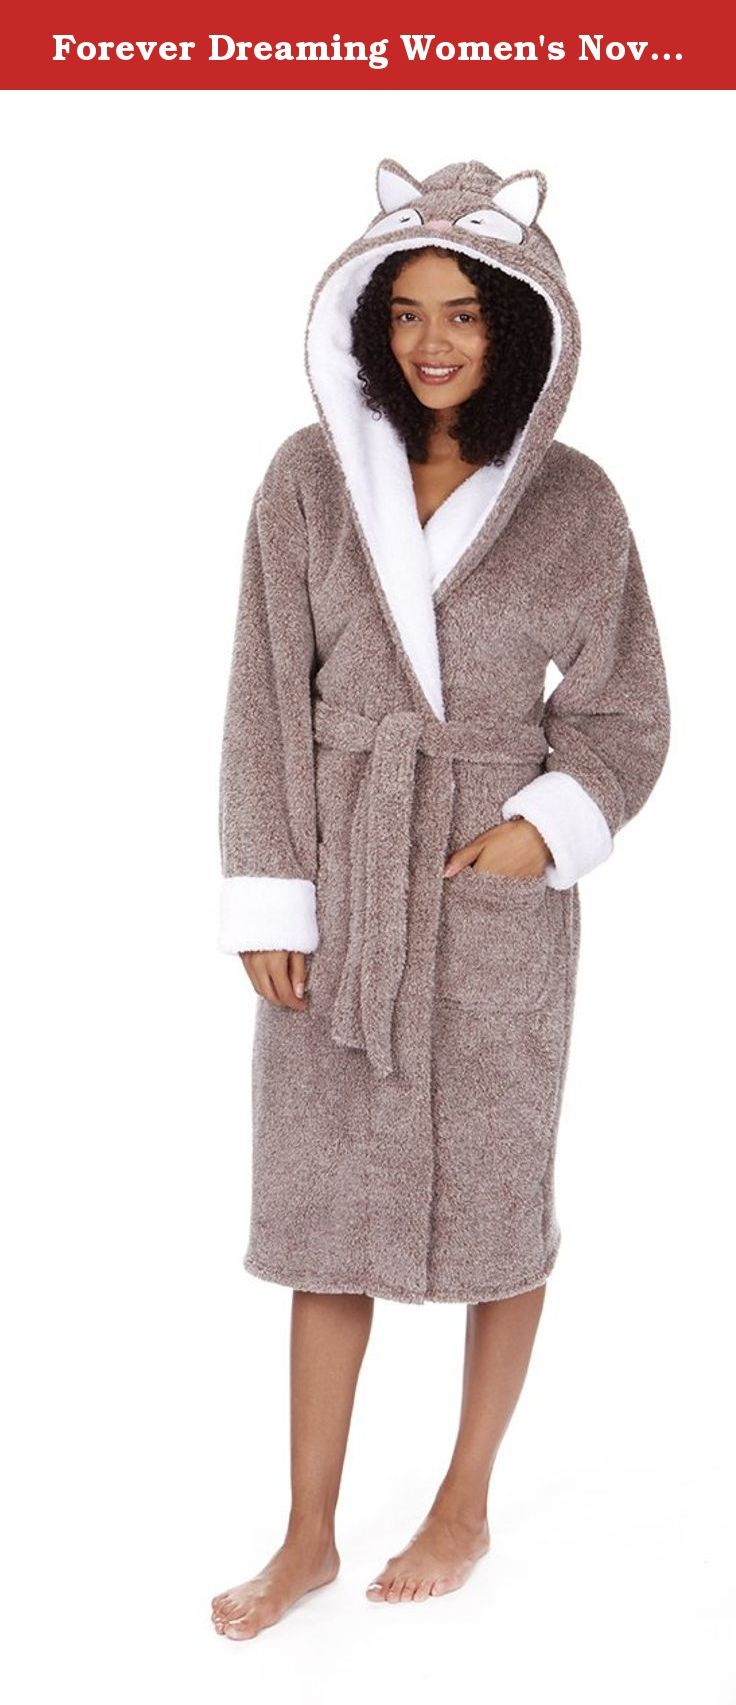 Forever Dreaming Women's Novelty Fleece Hooded Bathrobe. Keep snug and warm over winter with these unique bath robes from Forever Dreaming! These make an excellent gift for loved ones and can be worn throughout the year! Made from a 100% flannel fleece Polyester meaning these are super soft, strong, light weight, and resistant to shrinking, stretching, mildew and creasing! Available in various sizes, and in 2 remarkable designs (fox) or (owl). Featuring a hooded design, two pockets and a...